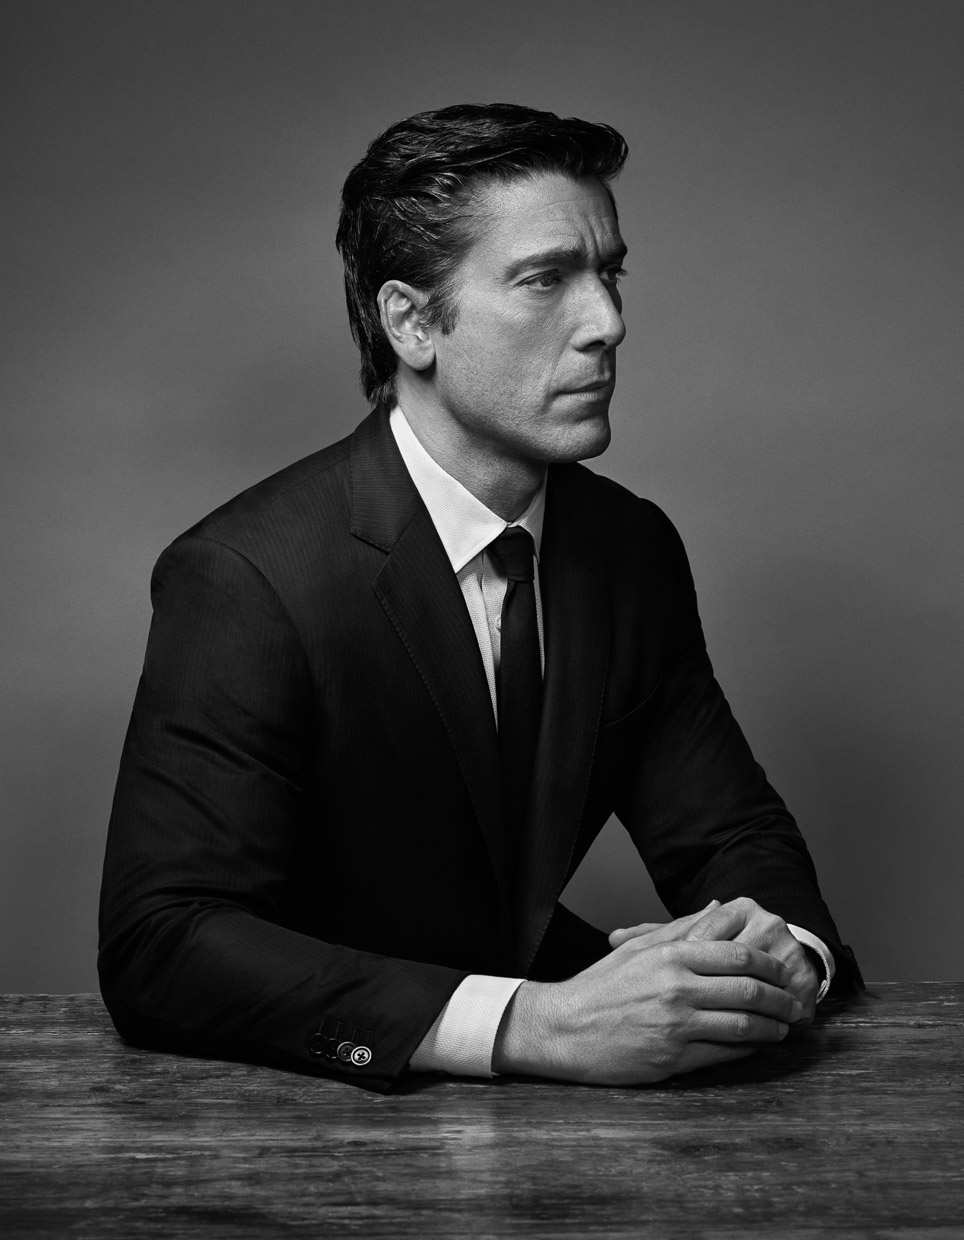 David Muir, news anchor. Variety Magazine.